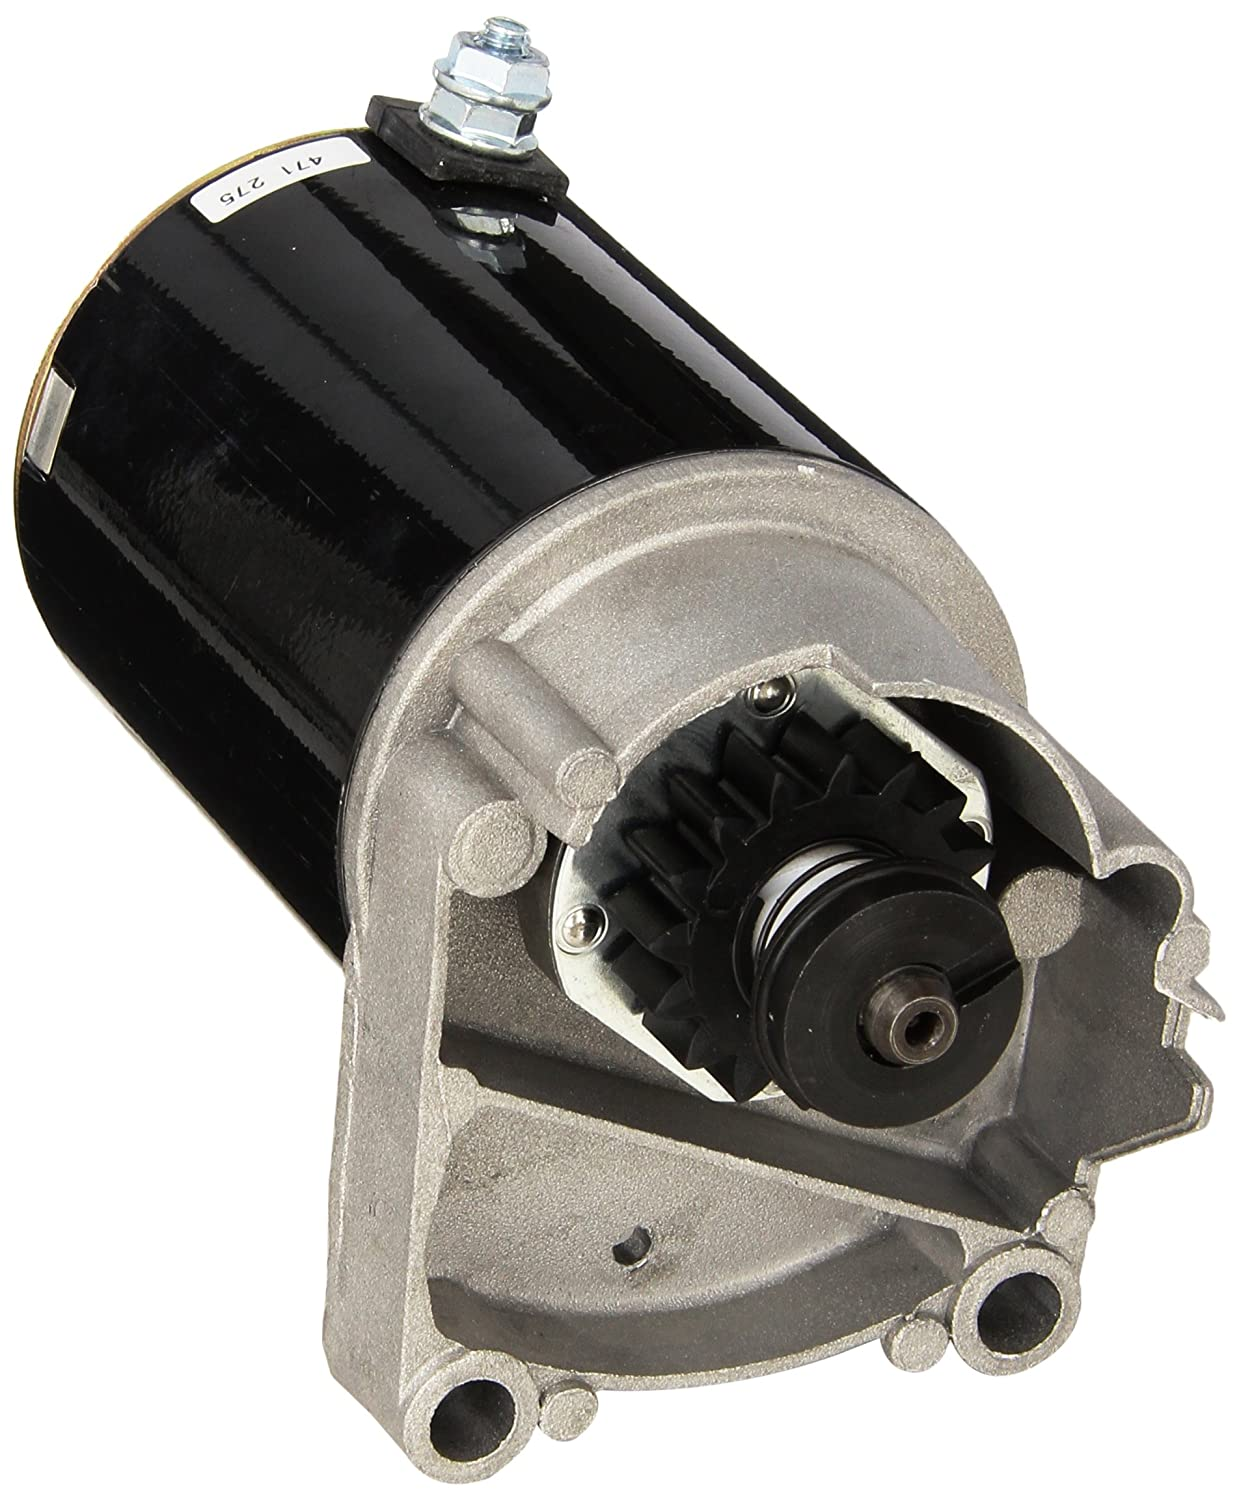 DB Electrical SBS0008 New Starter For Briggs & Stratton Air Cooled/Cub Cadet 582 580 1604 1605 1606 1610 /John Deere 116 /Toro 216-5 Tractor /393017, 394674, 394808, 497596 /AM38984, AM39287